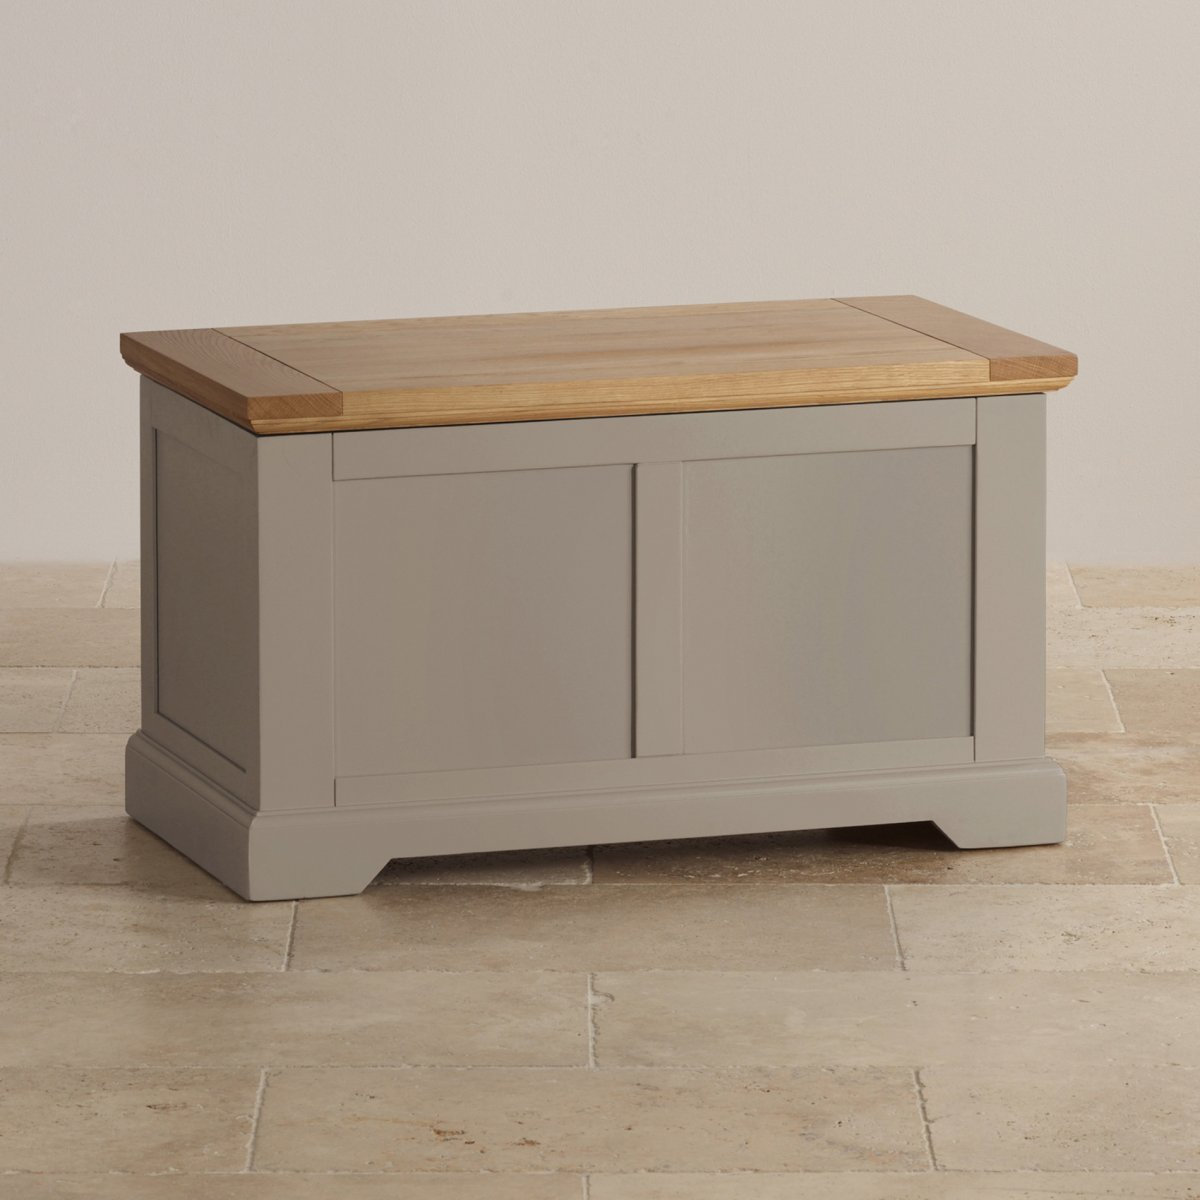 Natural oak and light grey painted blanket box for Furniture box